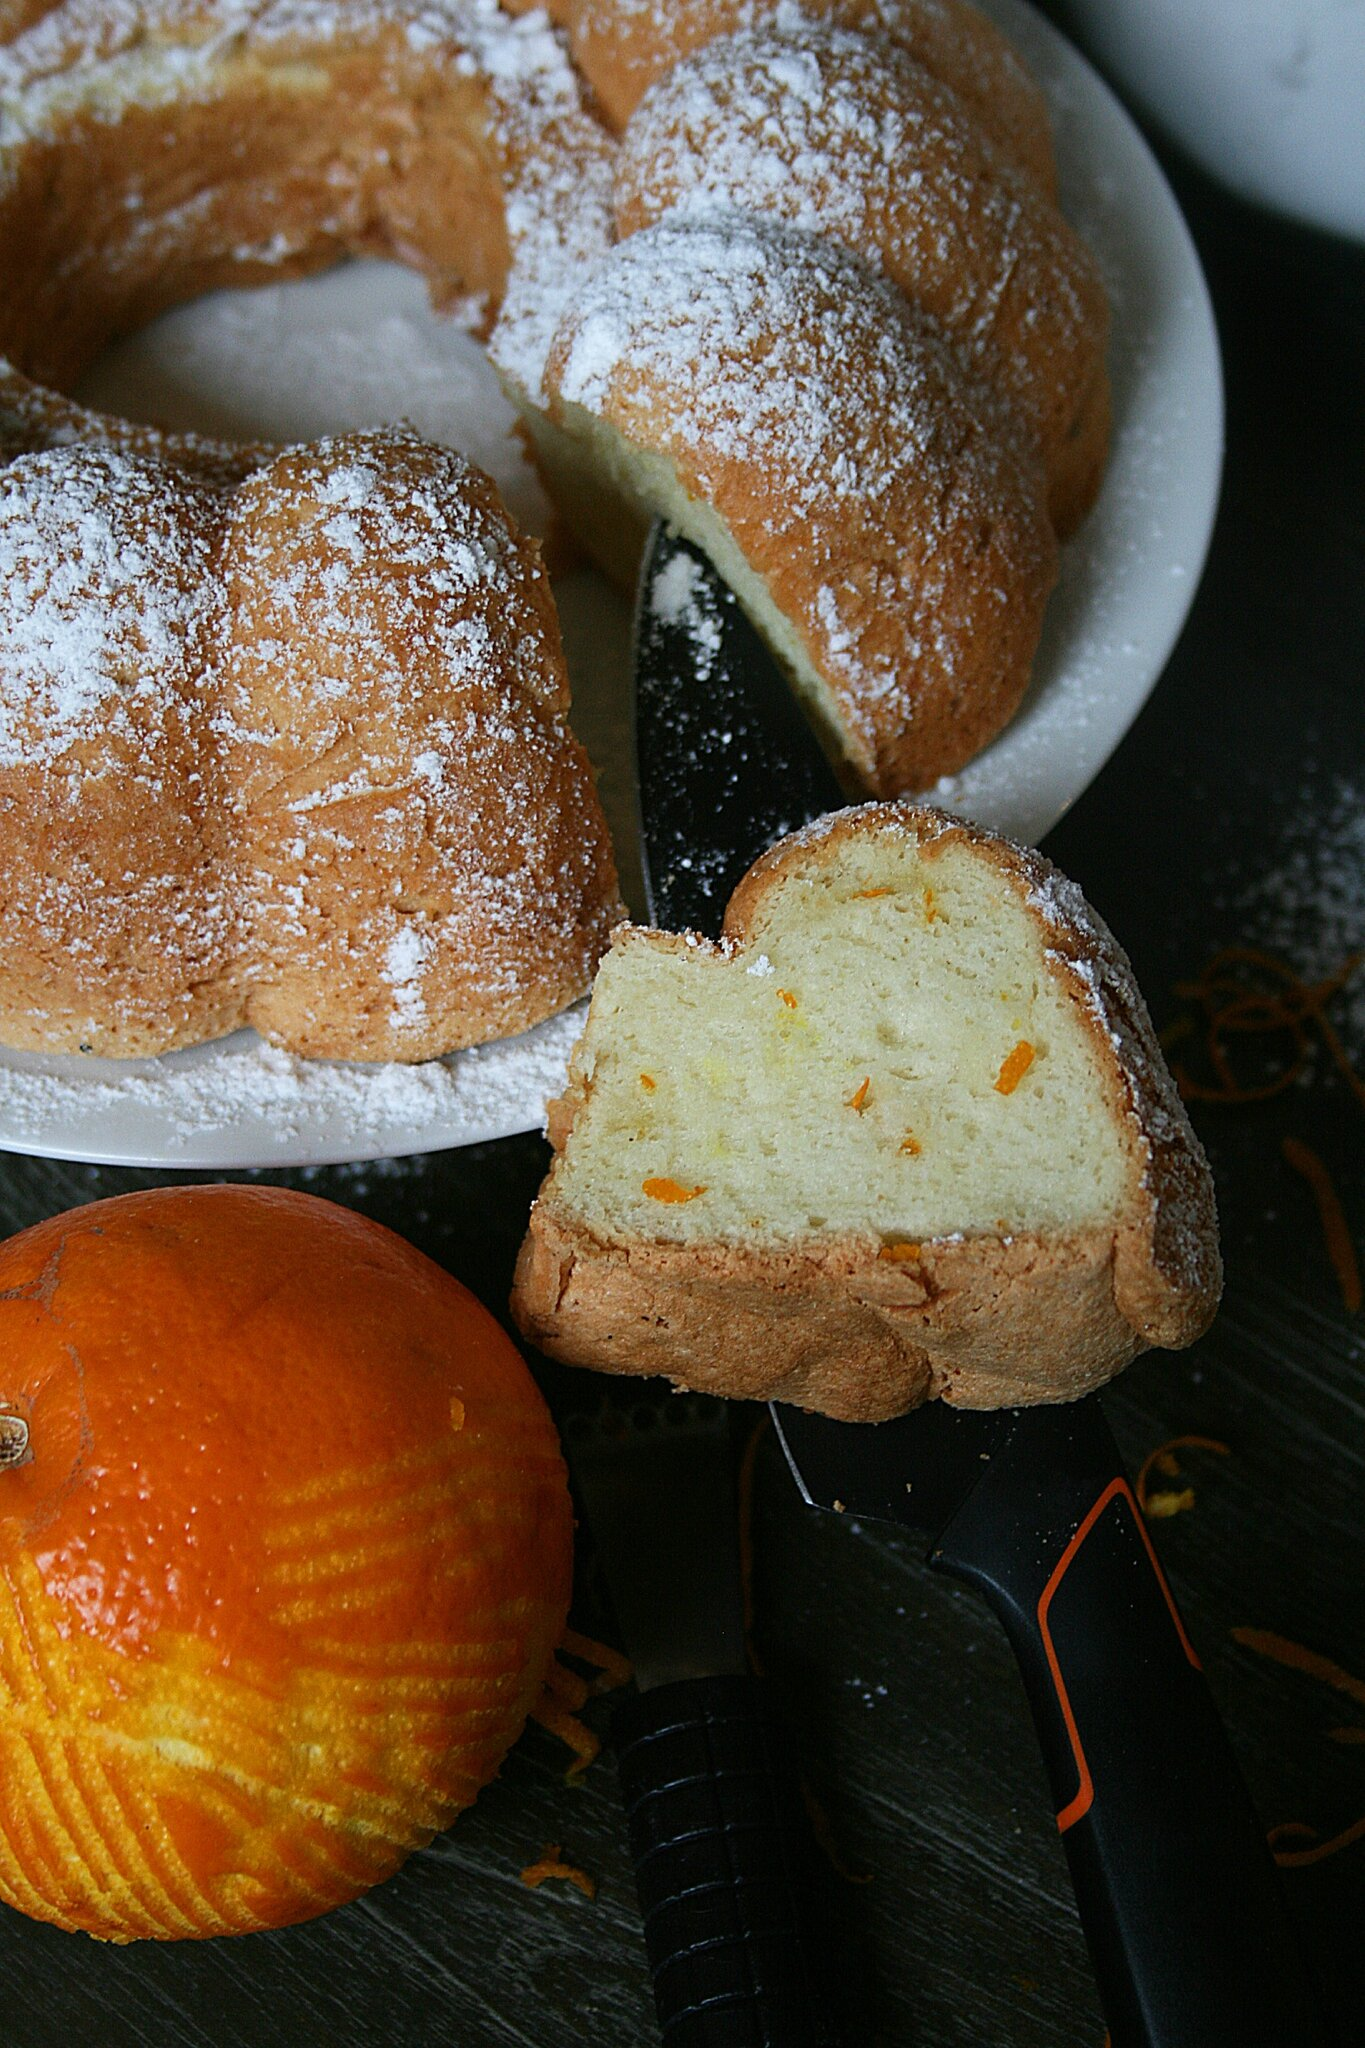 Angel cake ou chiffon cake à l'orange (gâteau des anges)